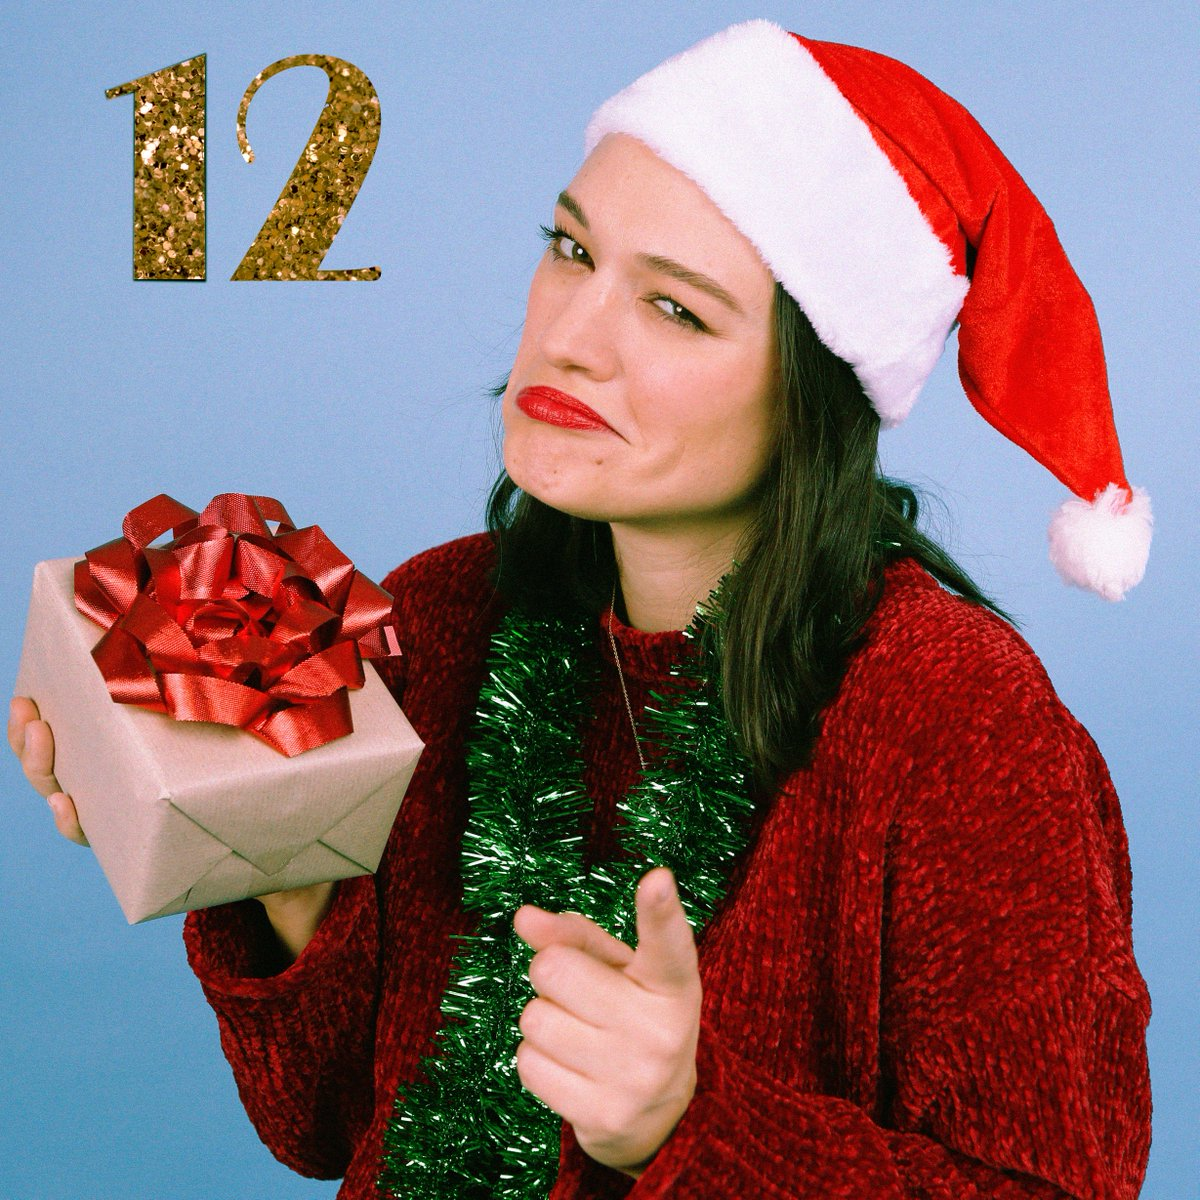 The Staves On Twitter On The Final Day Of Our Twelvestavesofchristmas We Want To Thank Everyone Who Added Nothing S Gonna Happen Demo To Their Playlist Sent Their Favourite Christmas Cracker Jokes